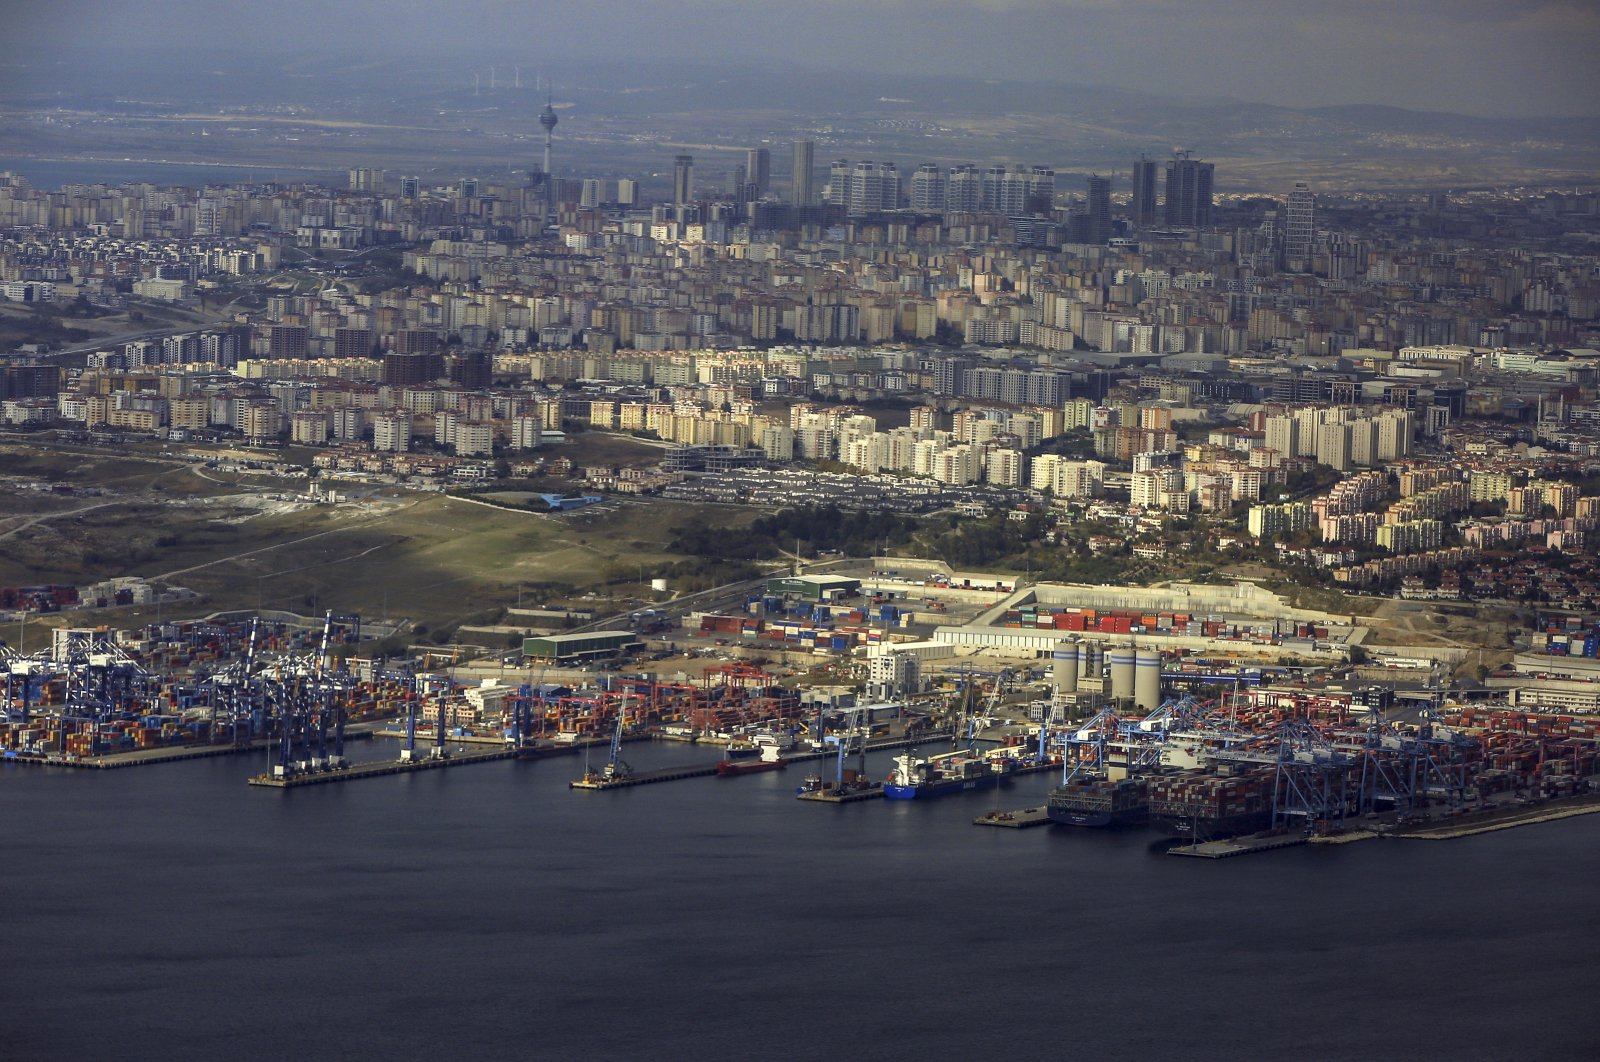 An aerial view of the European side of Istanbul with the Ambarlı port in the foreground, the biggest port in Turkey, Nov. 9, 2018. (AP Photo)